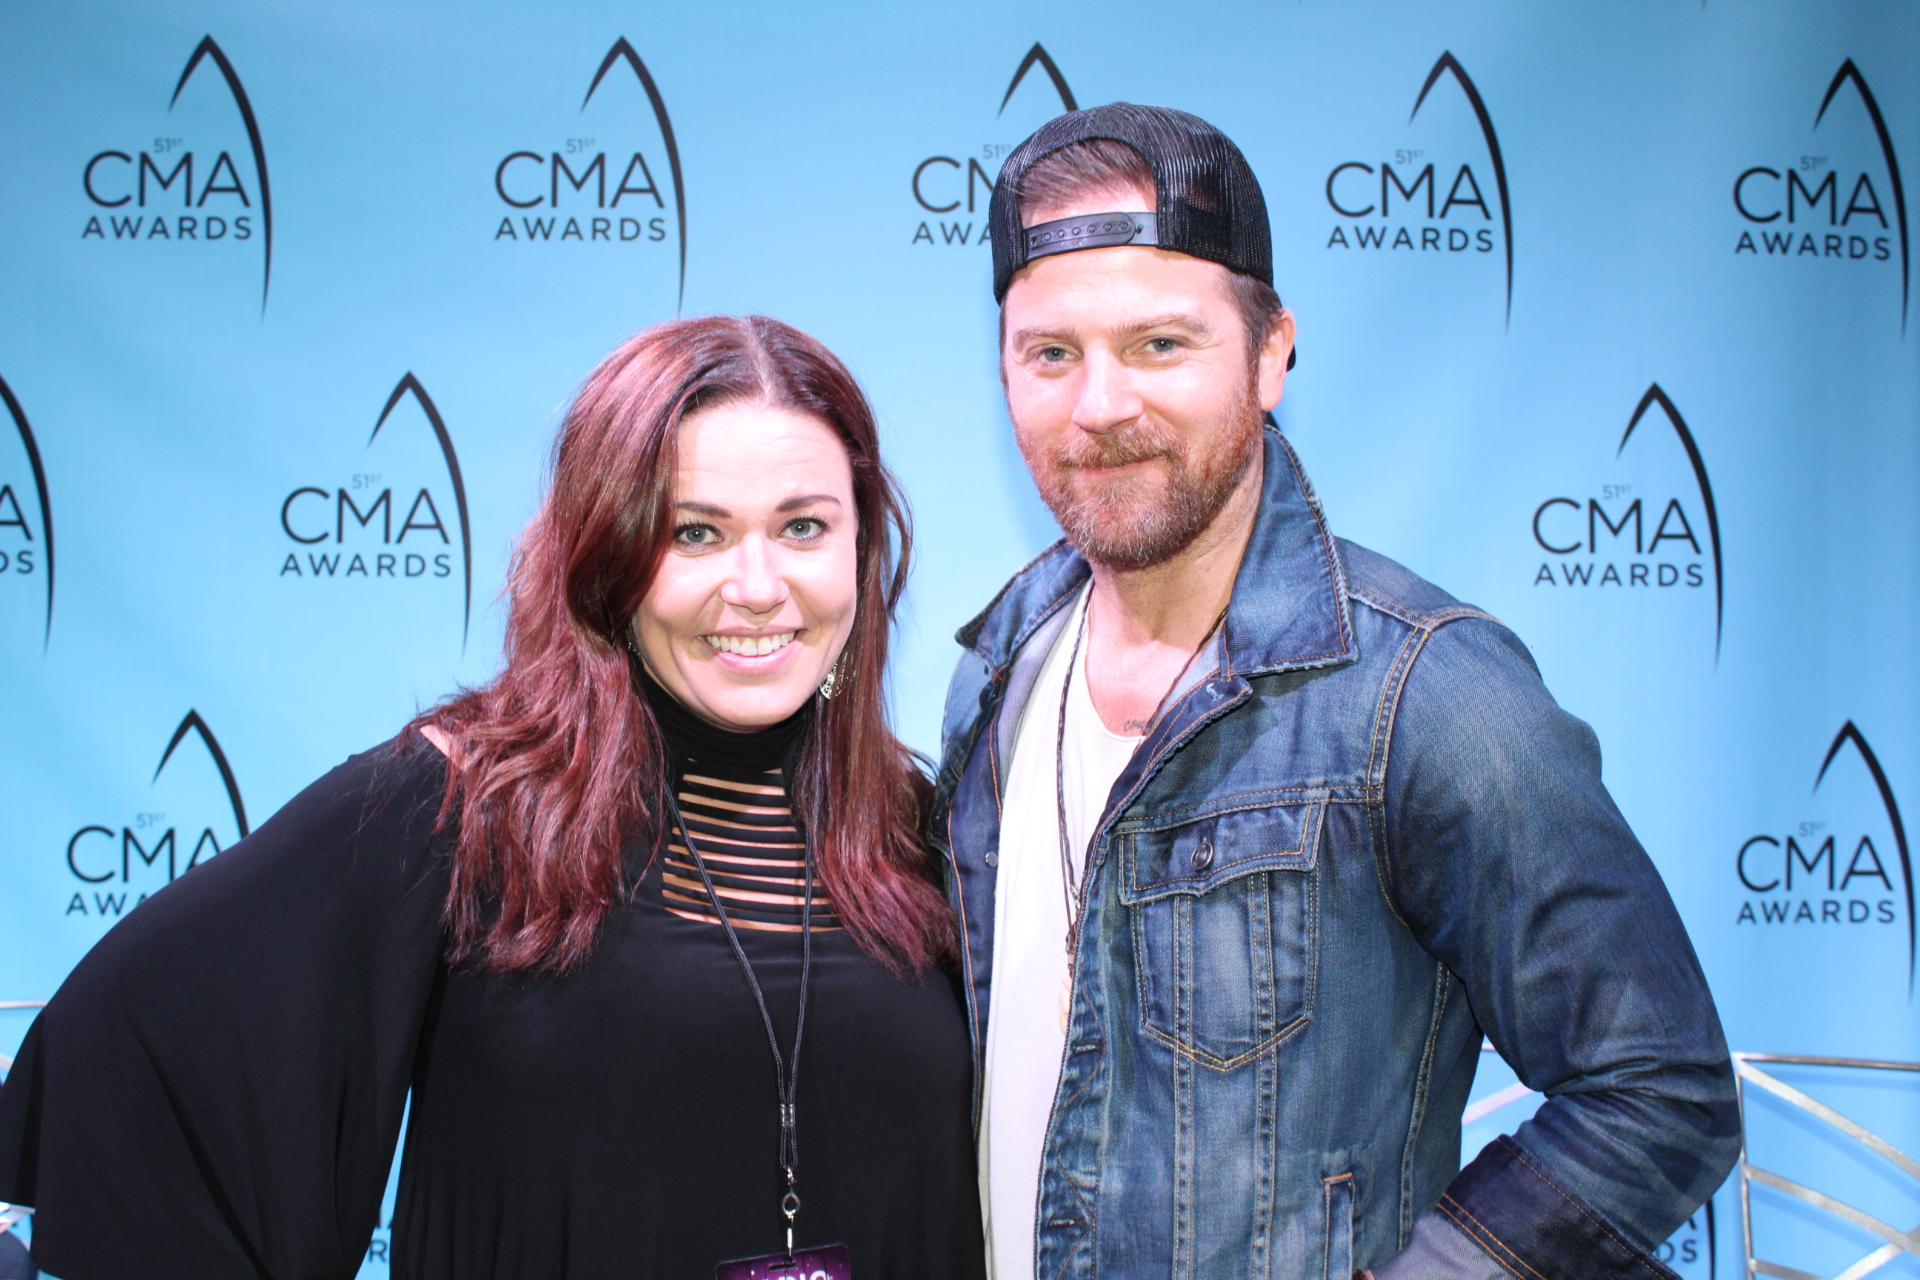 lauren alaina dating kip moore signs she wants to hook up